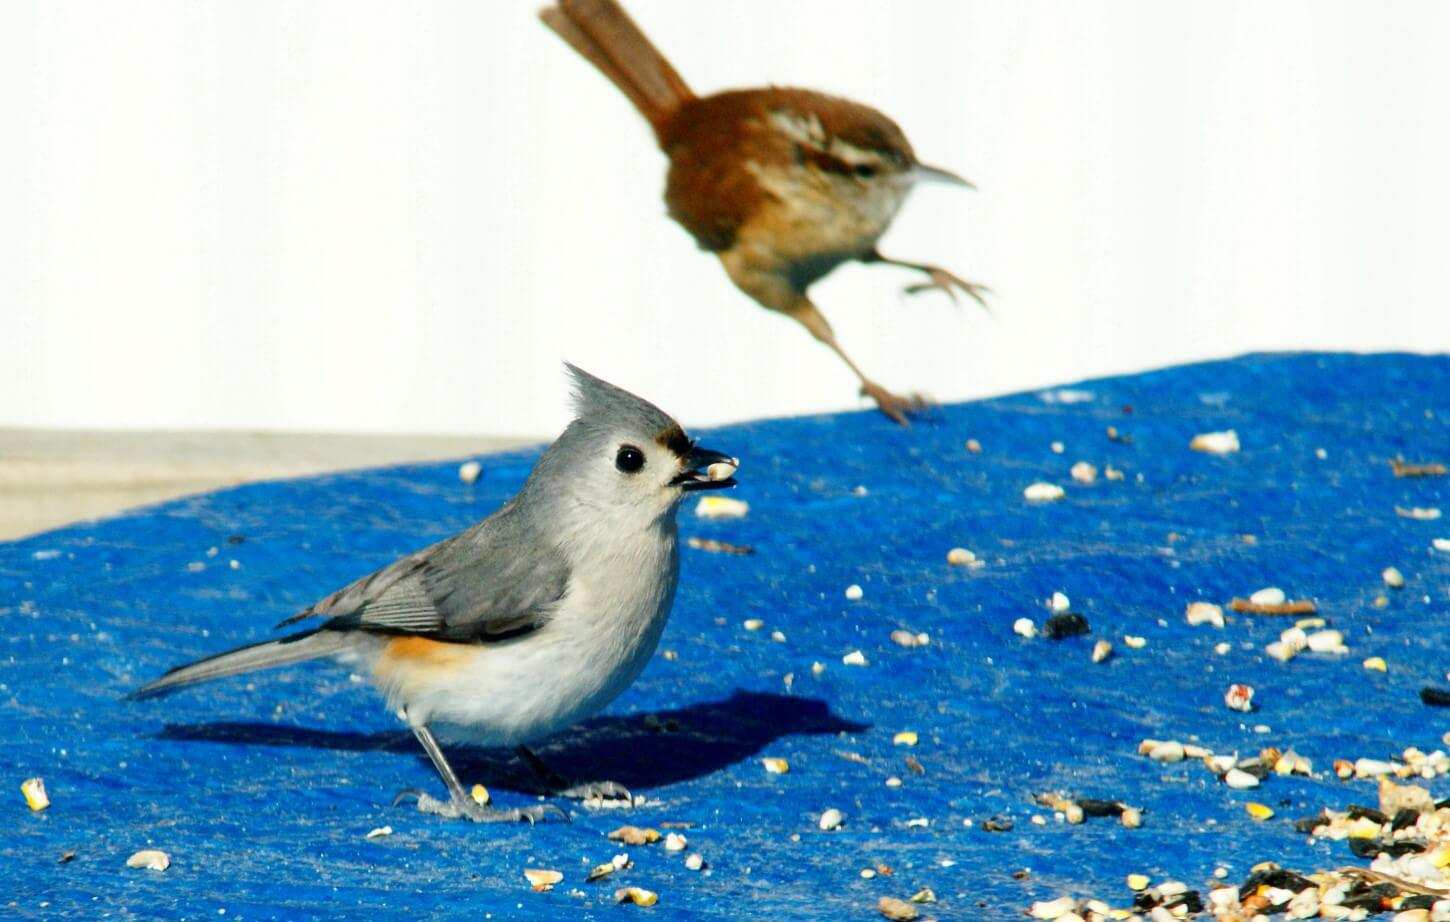 Titmice and Wrens